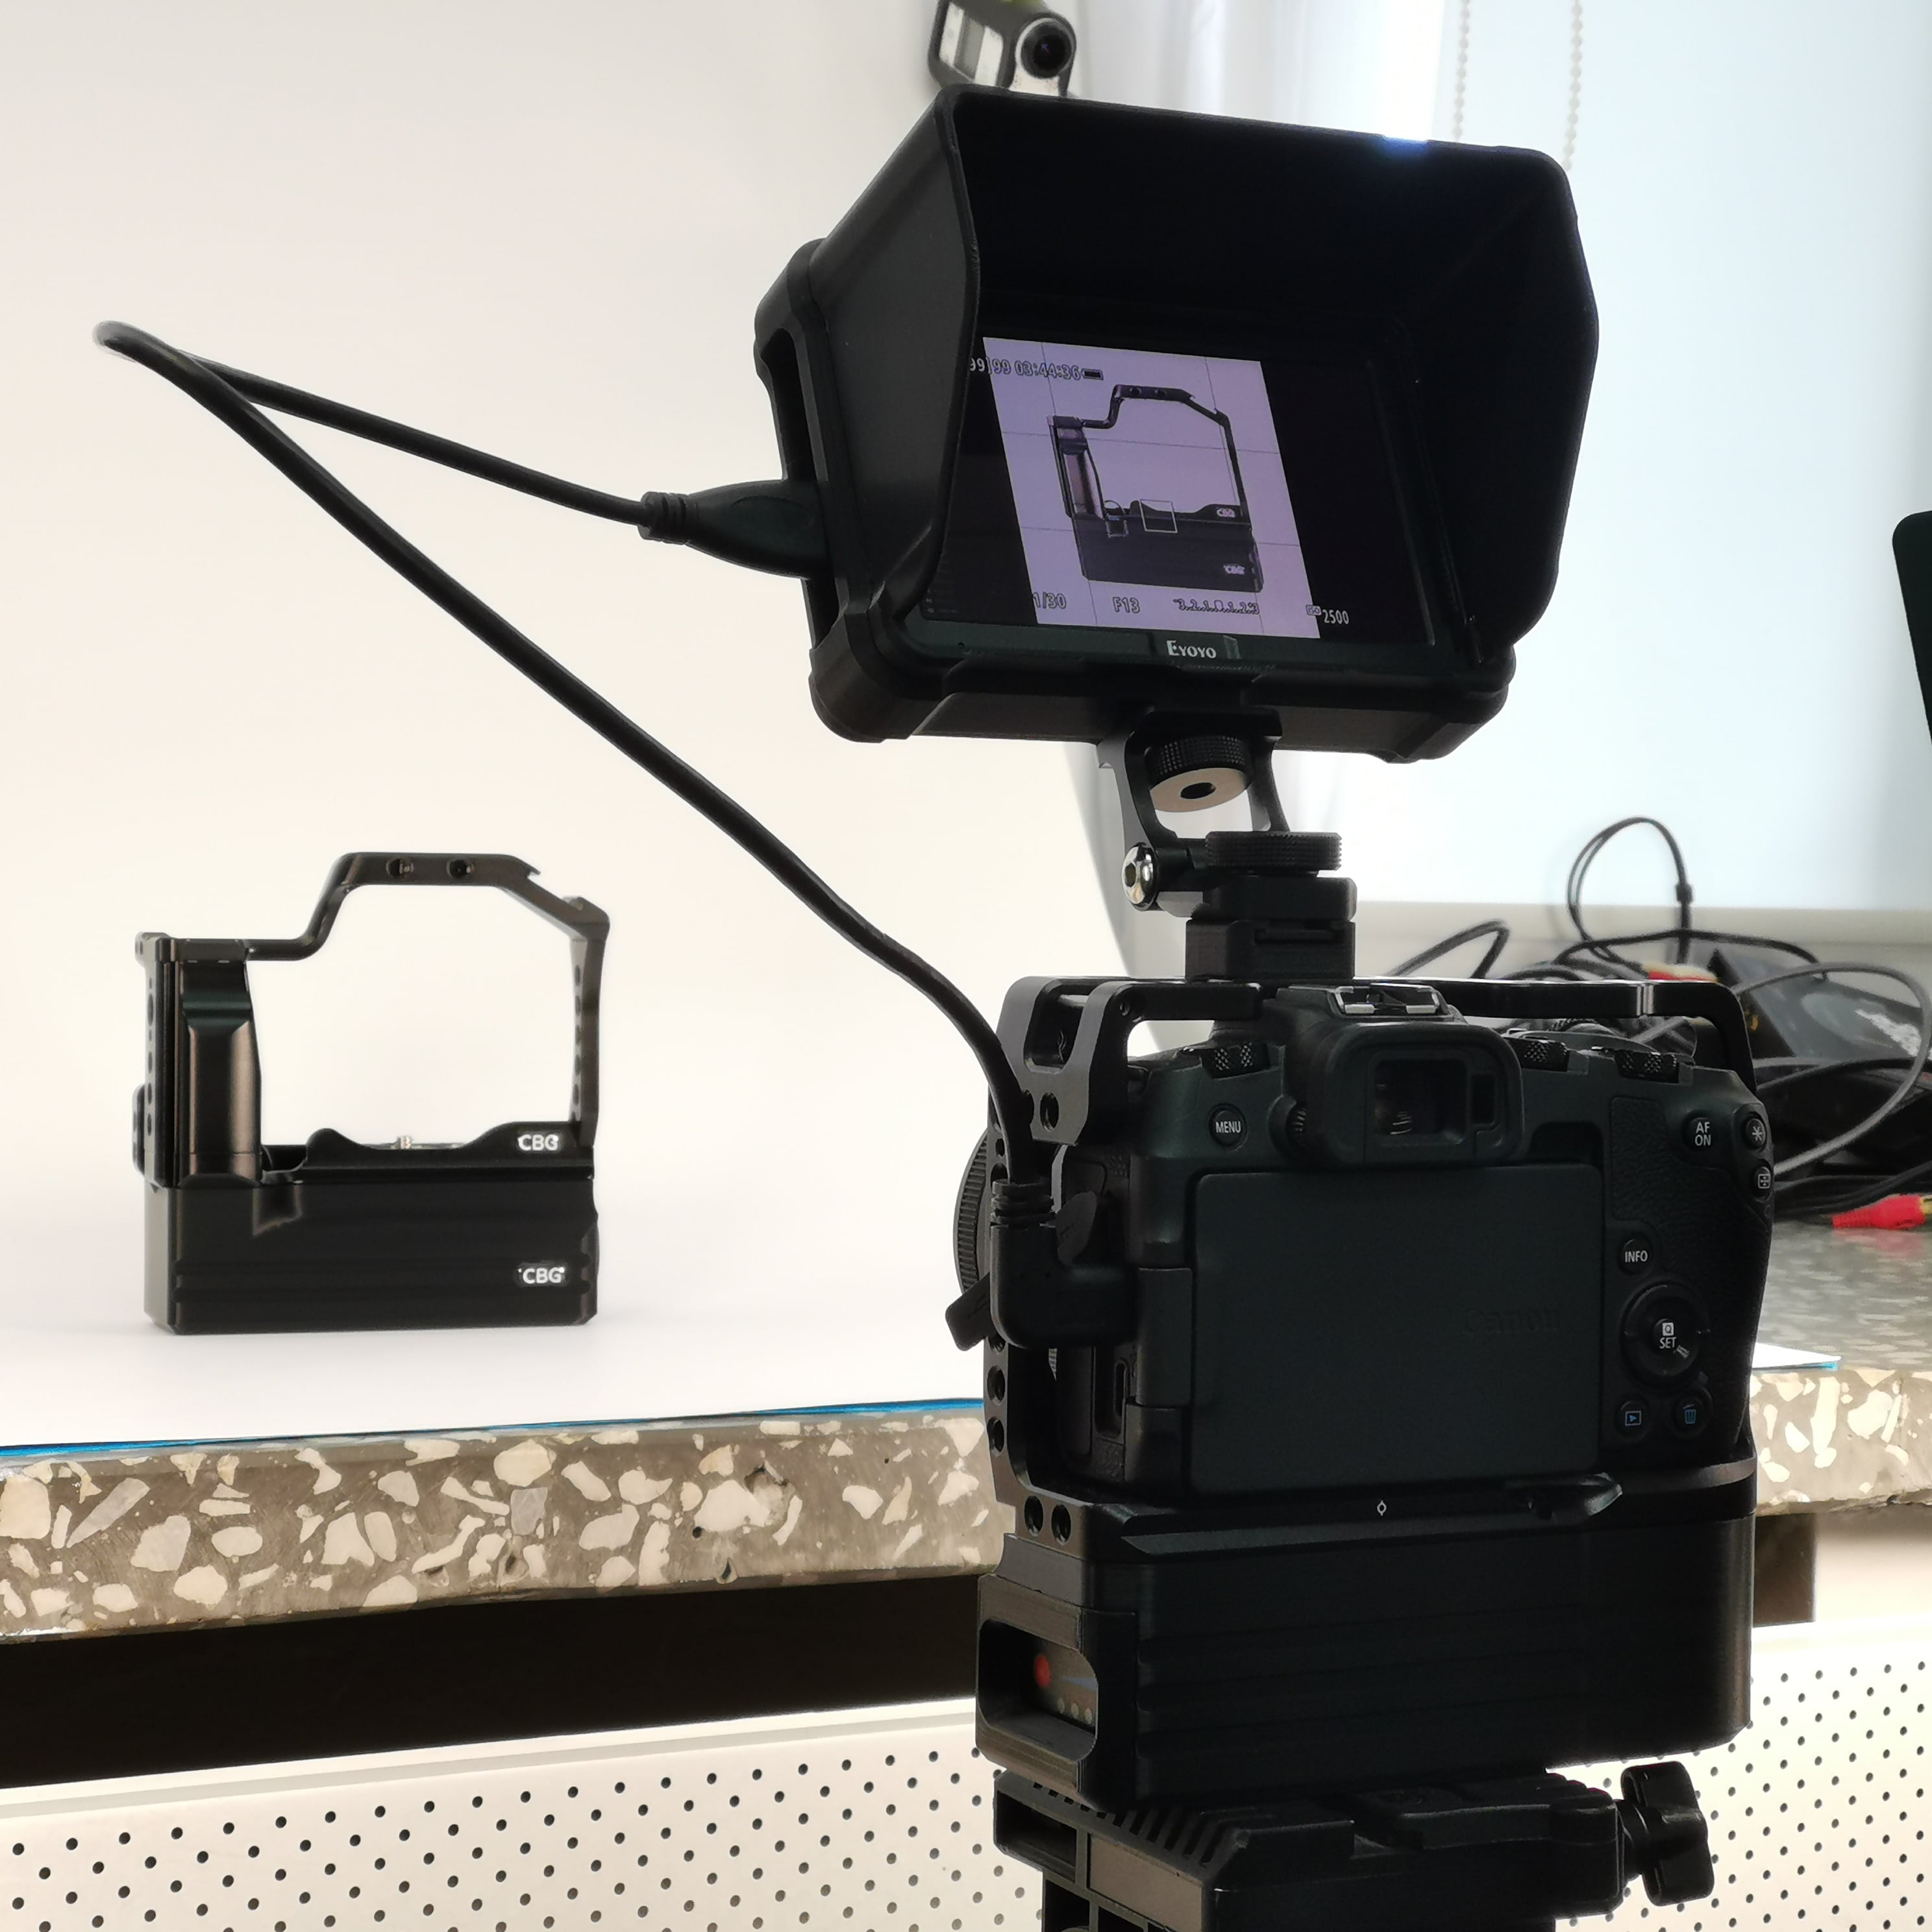 Canon EOS RP + cage + CustomBatteryGrips Battery Add-On